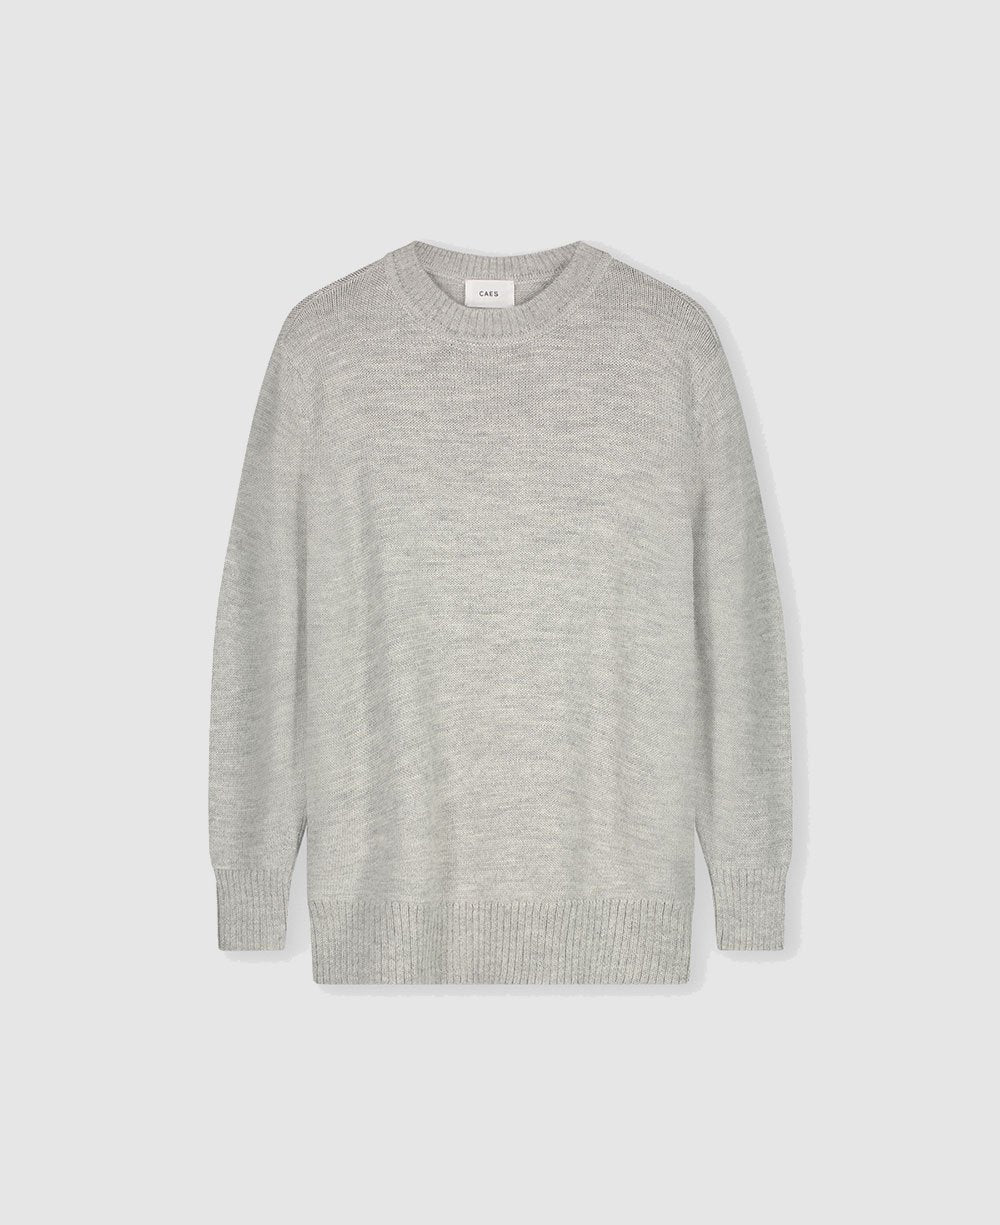 0002 oversized knitted sweater with curved sleeves - light grey melange